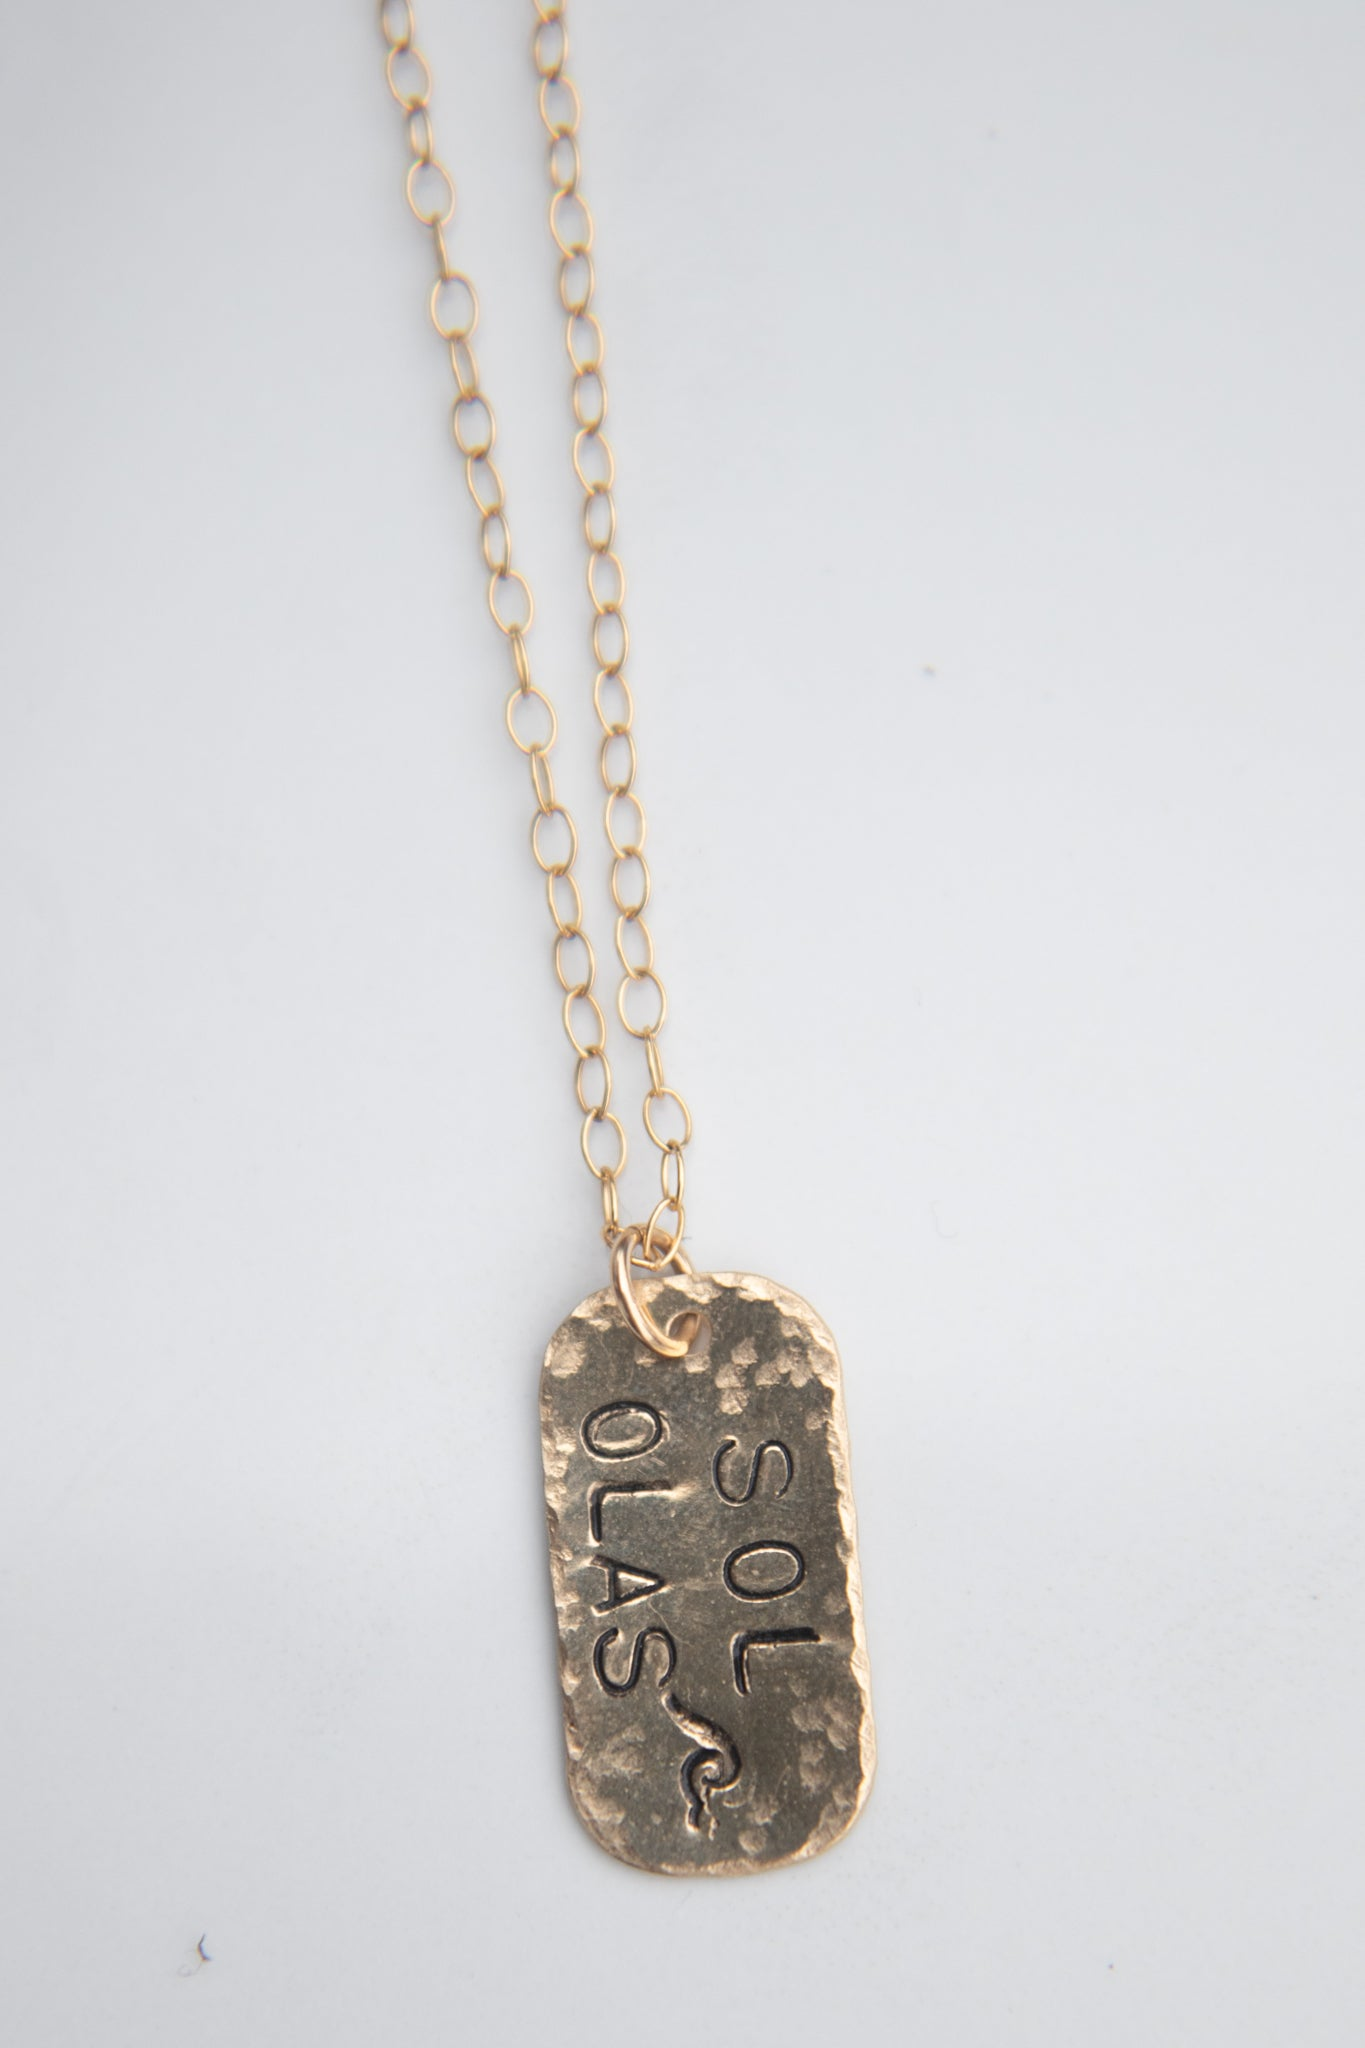 Sol Olas tag Necklace